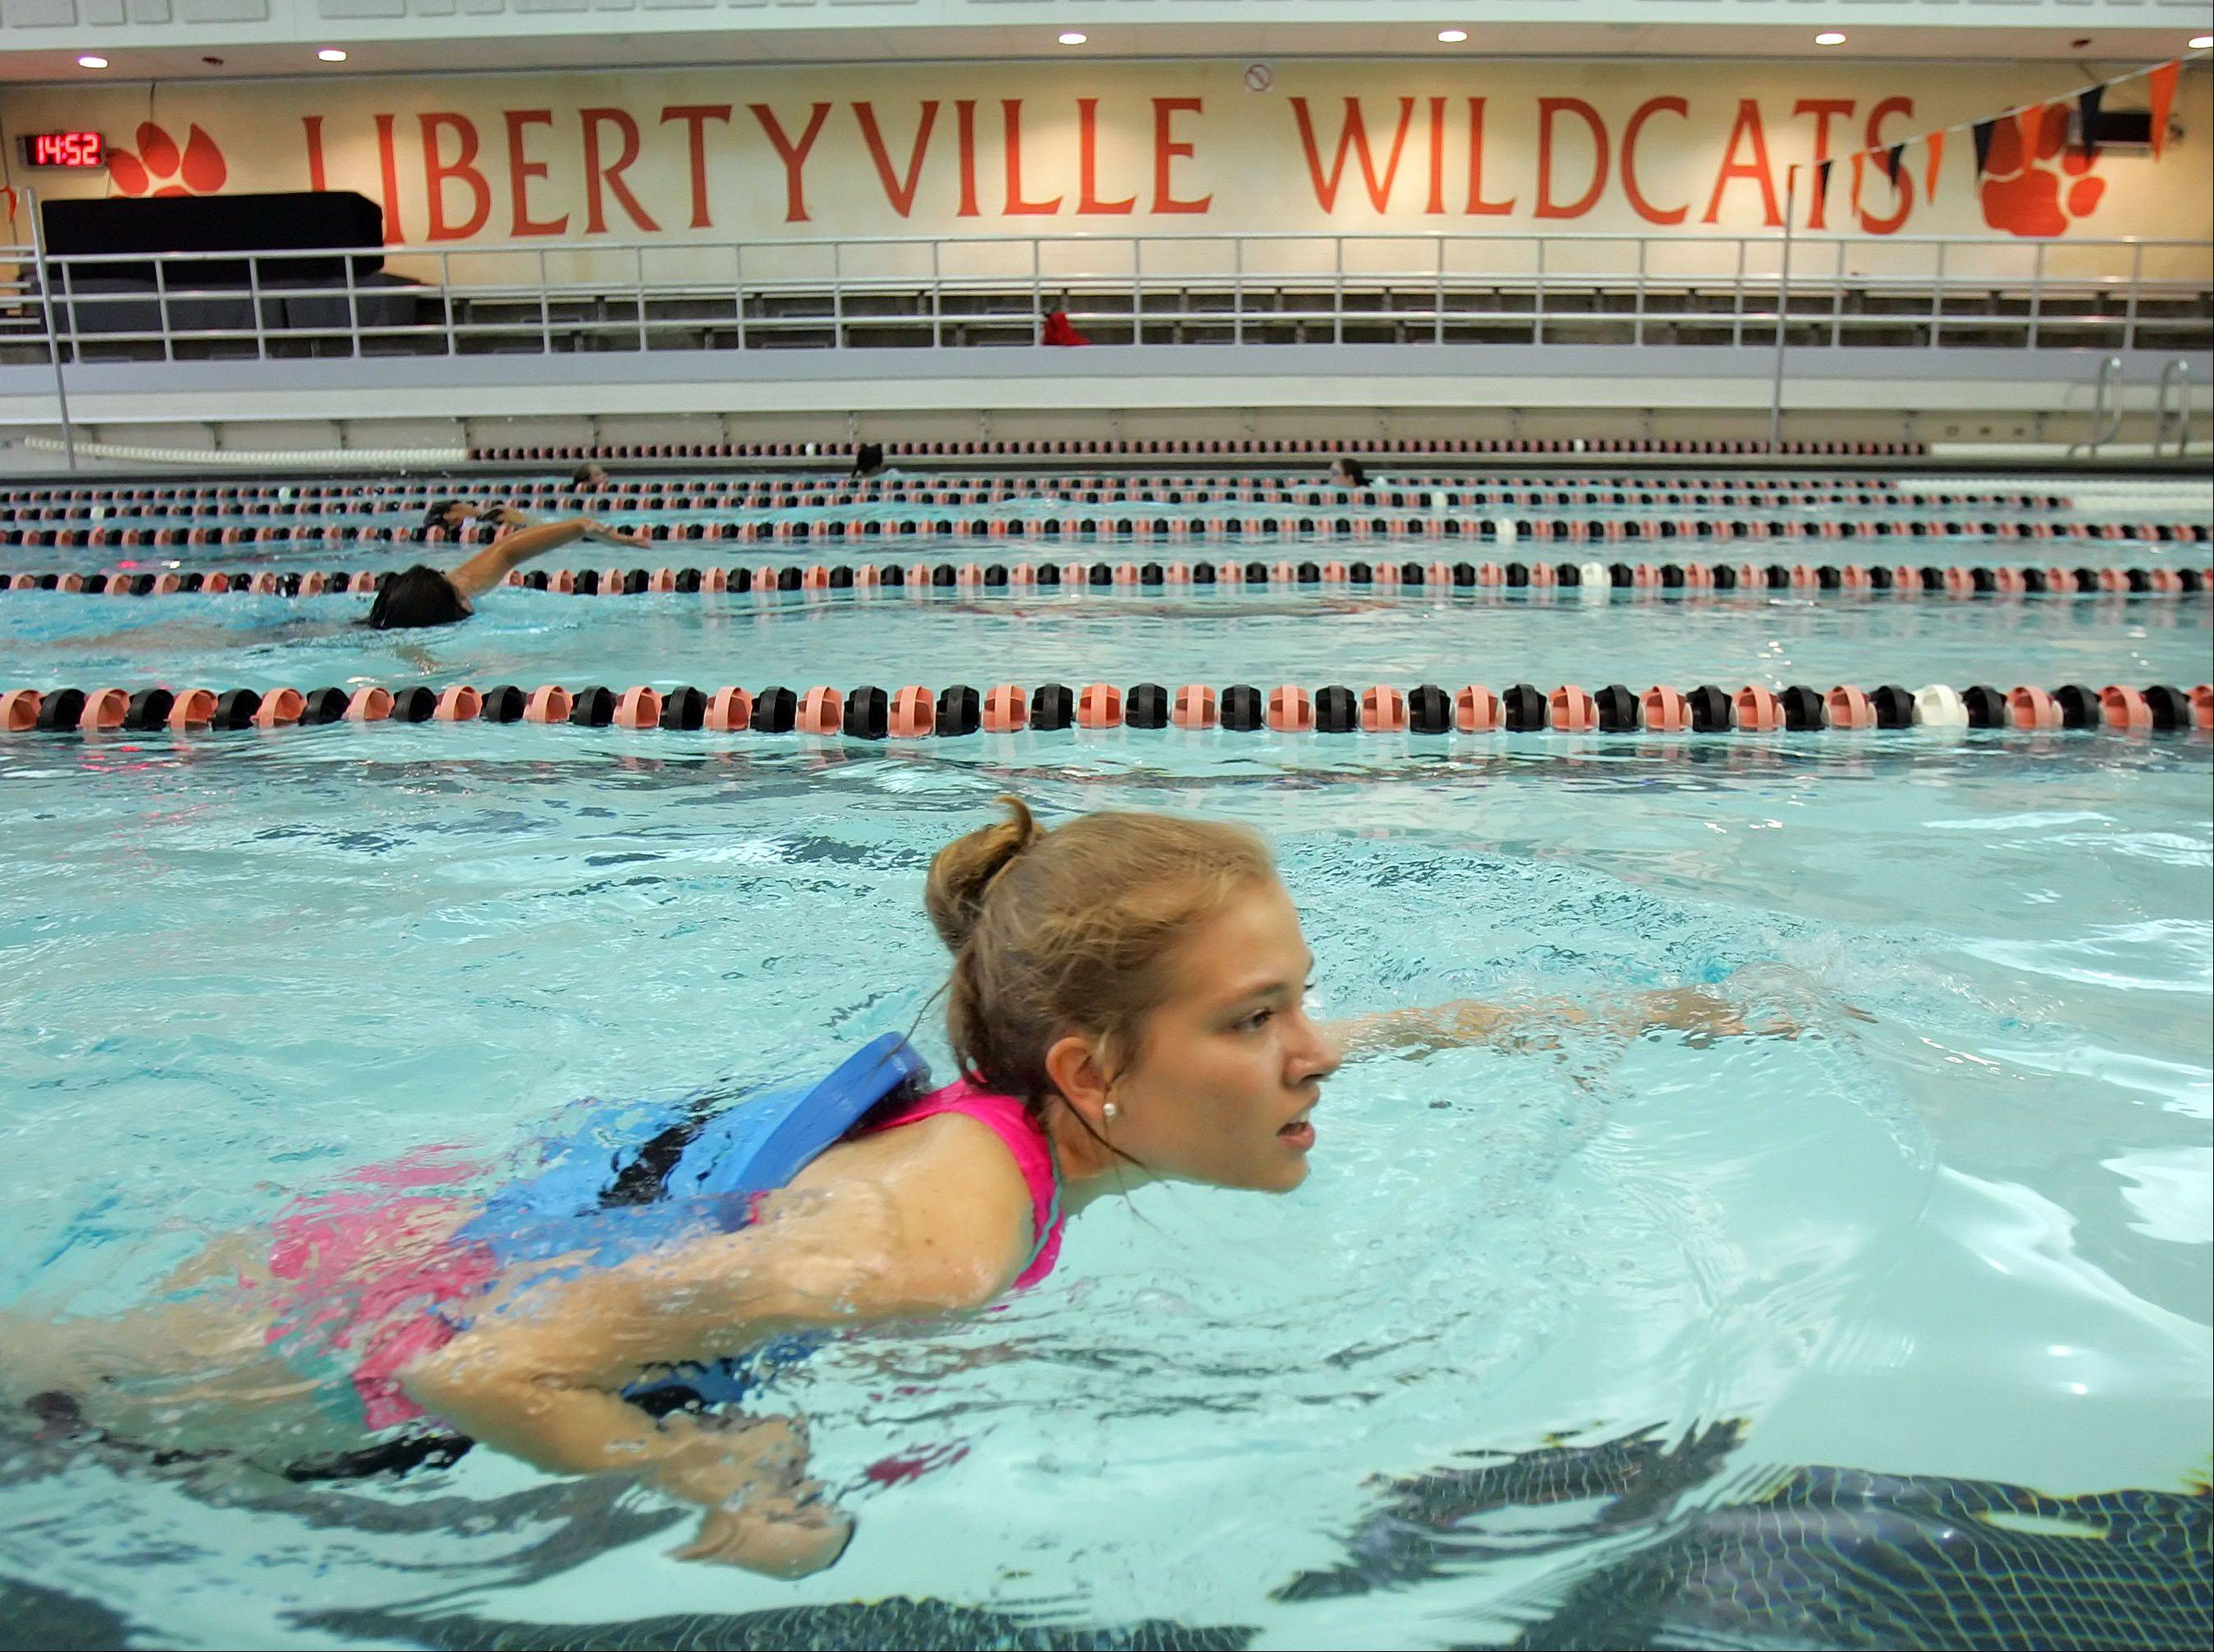 Libertyville High School junior Anna Smiley competes in the swimming portion of a mini-triathlon at Libertyville High School on Thursday morning.